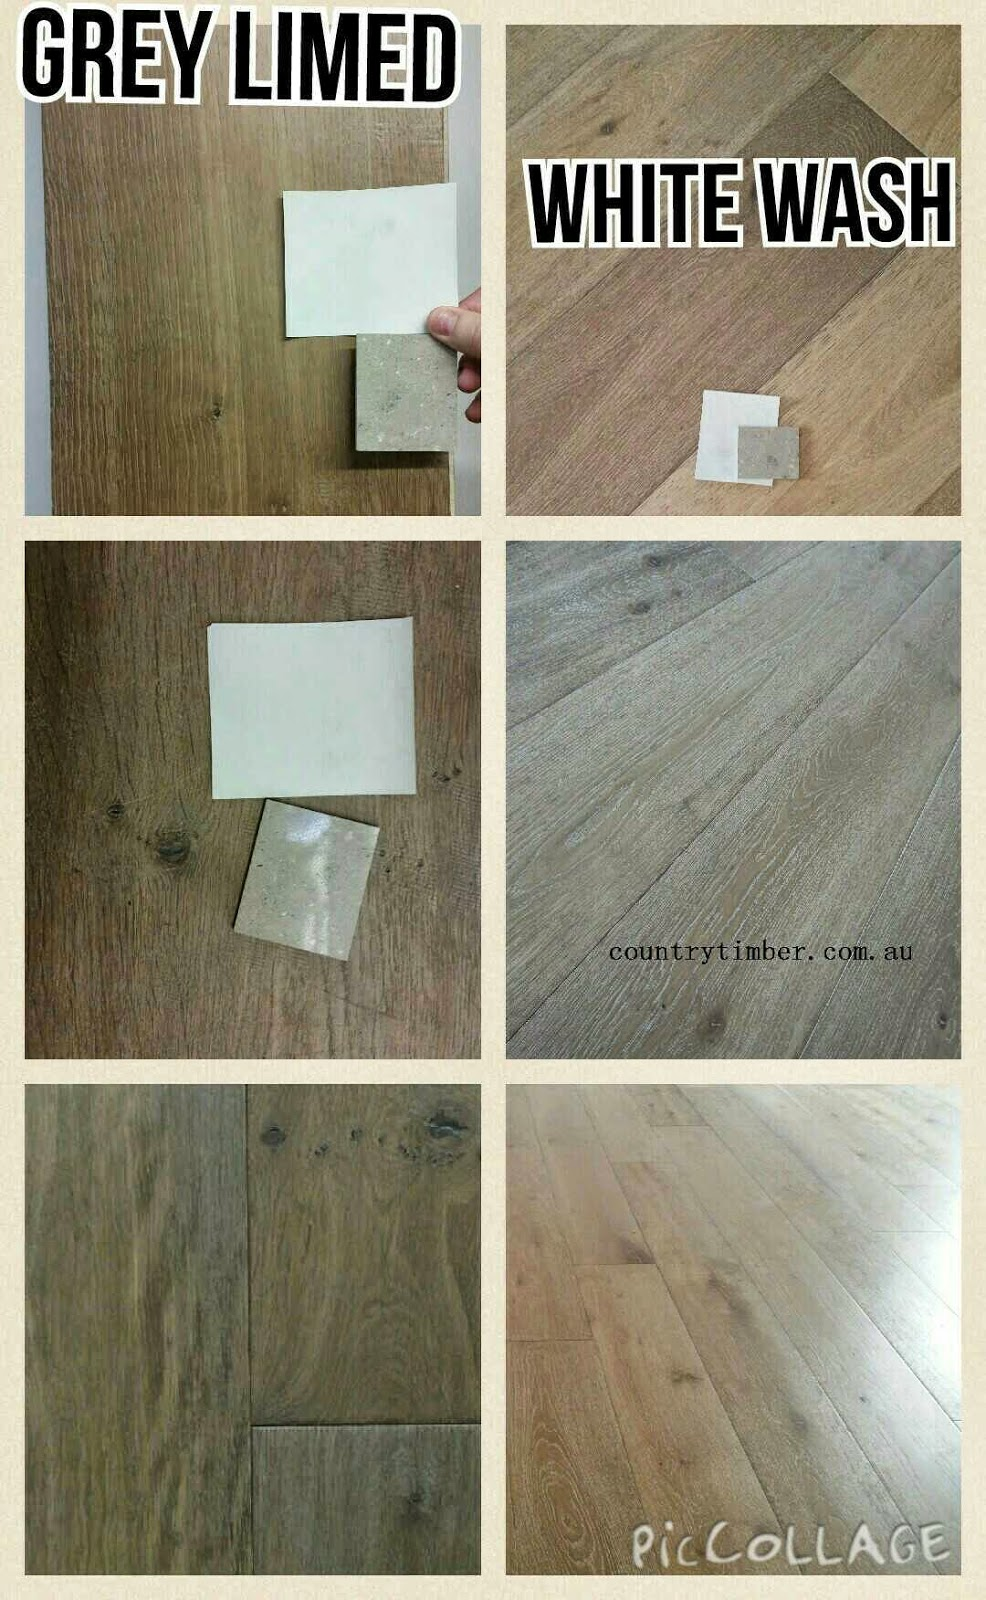 coverings godfreys riverview floors image nsw north by flooring choices richmond listing pic floor st